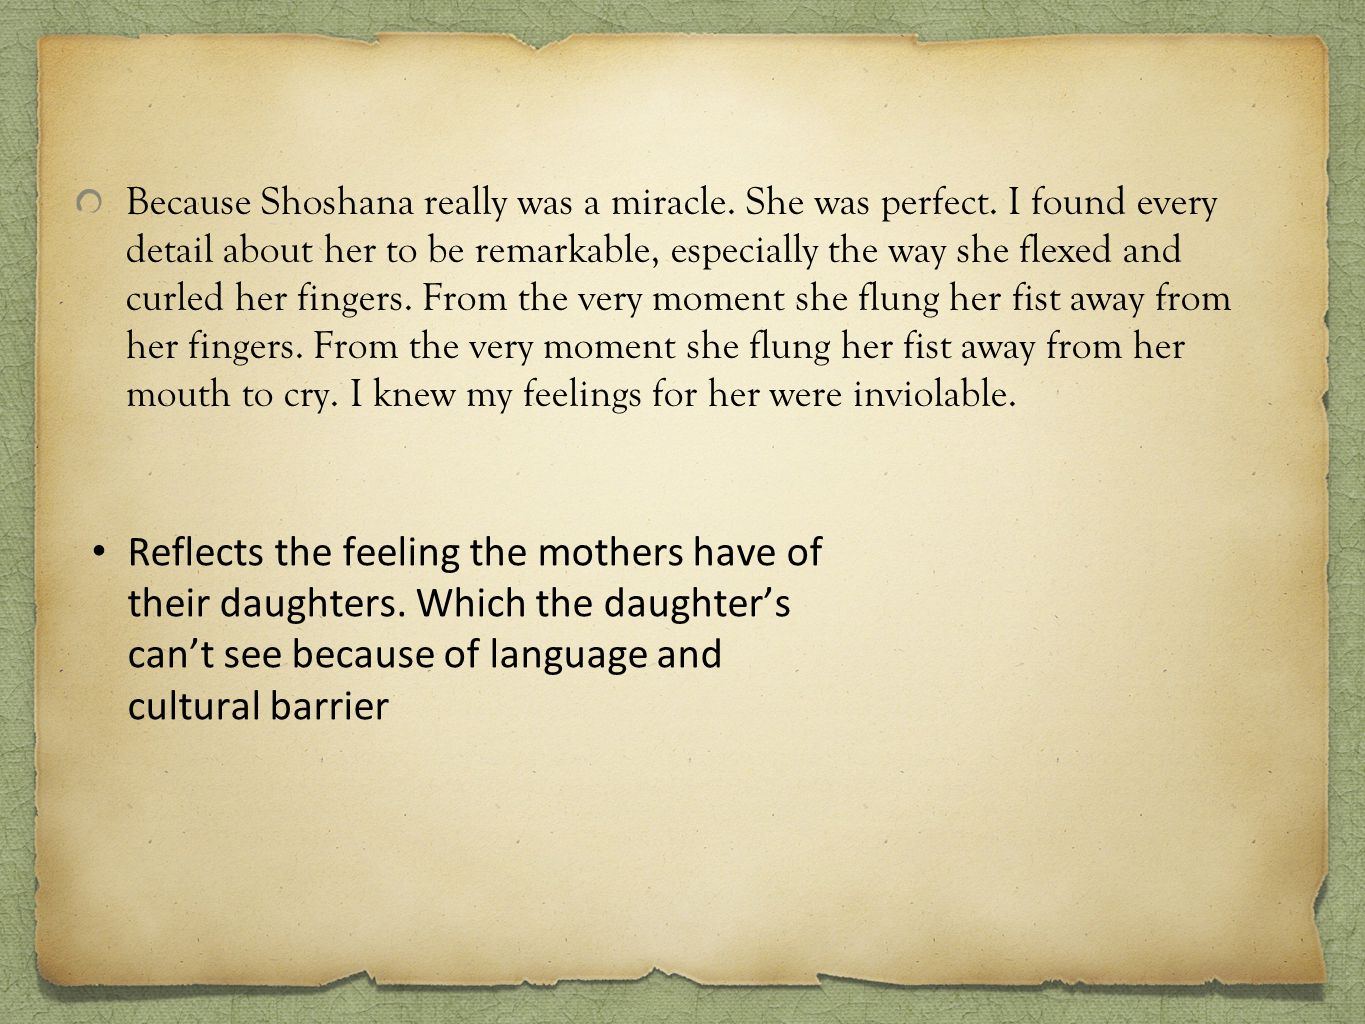 Because Shoshana really was a miracle. She was perfect